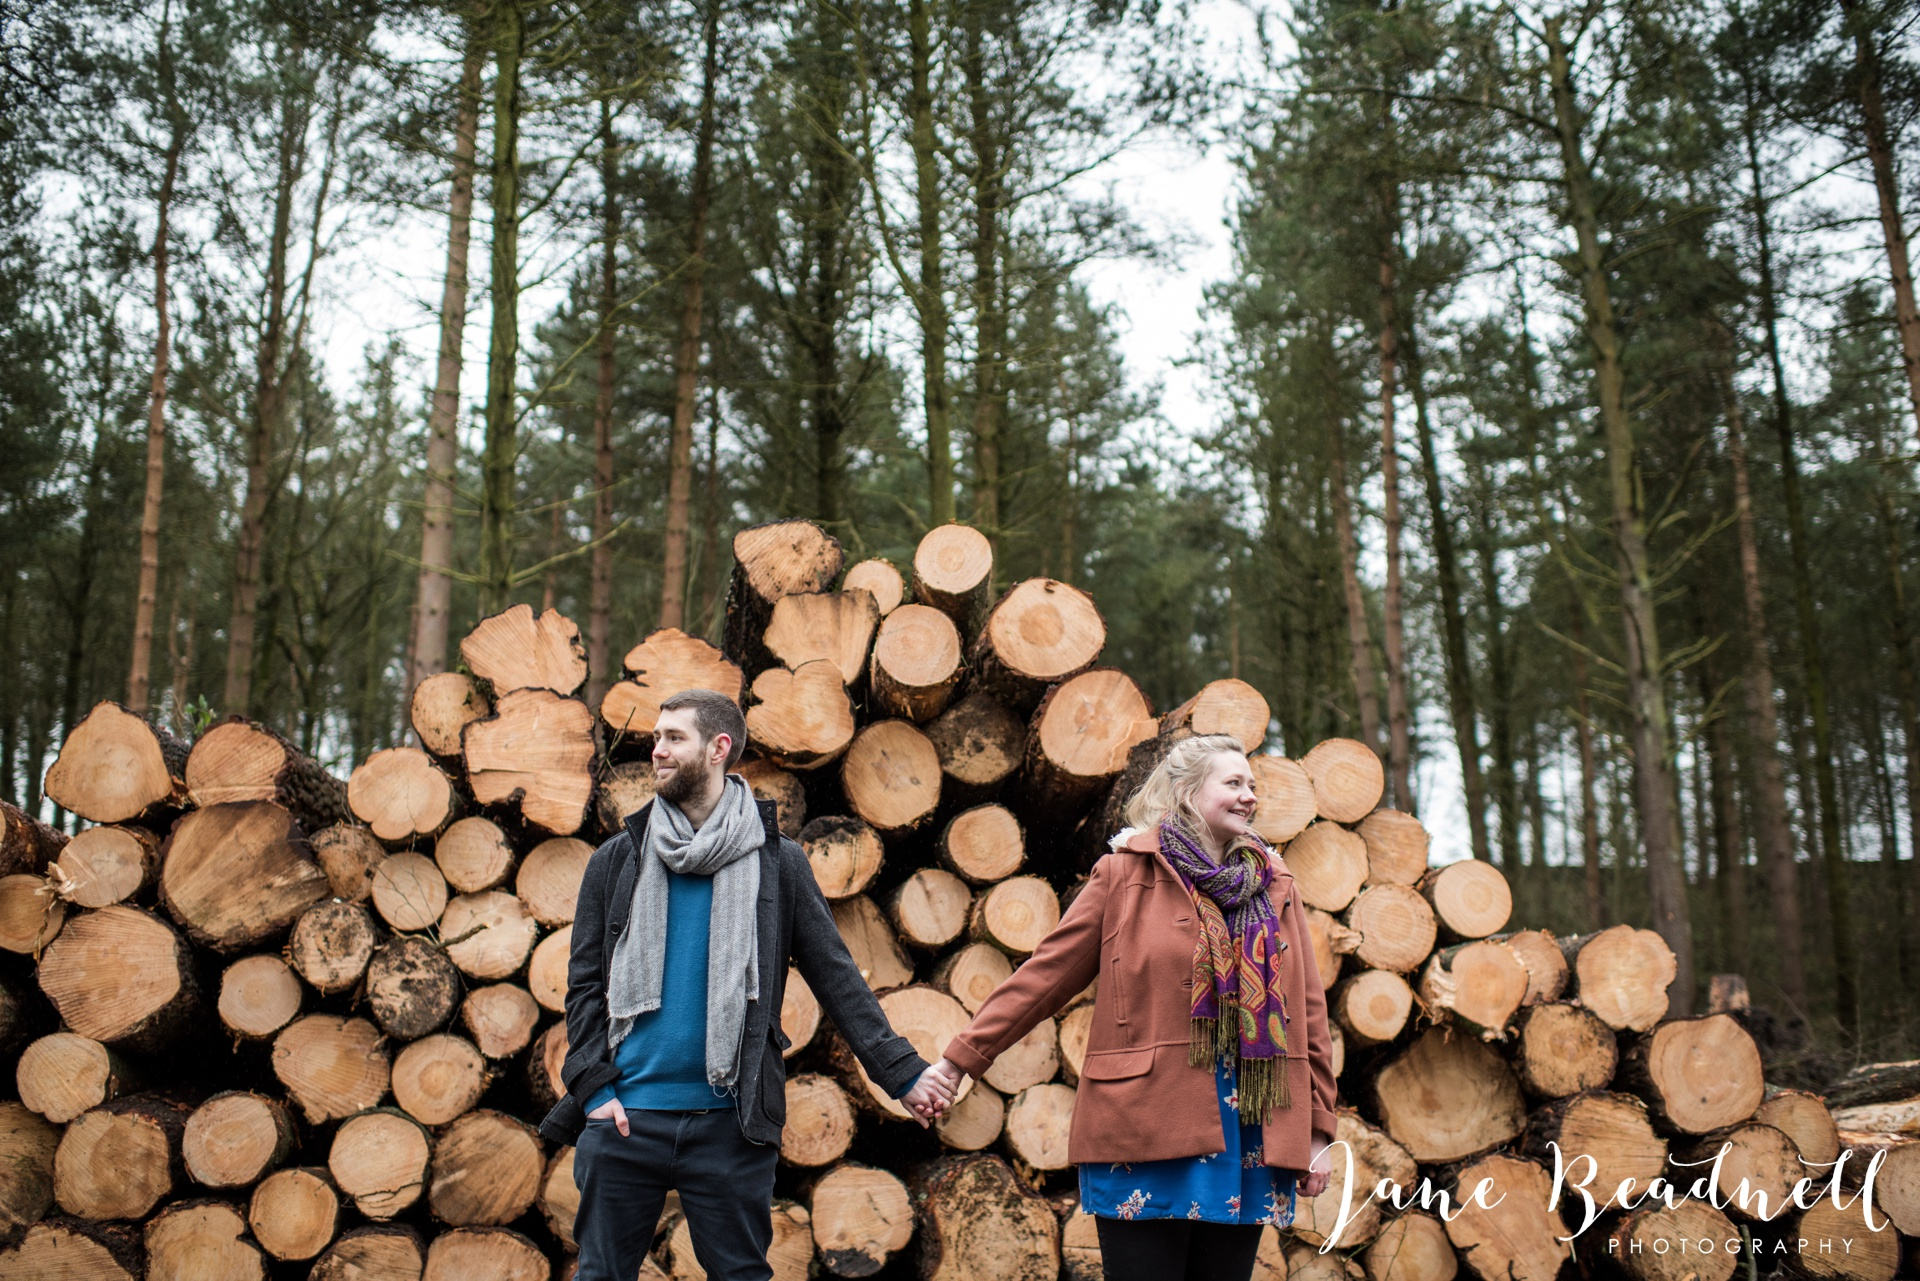 engagement photography Chevin jane beadnell wedding photographer Otley_0020